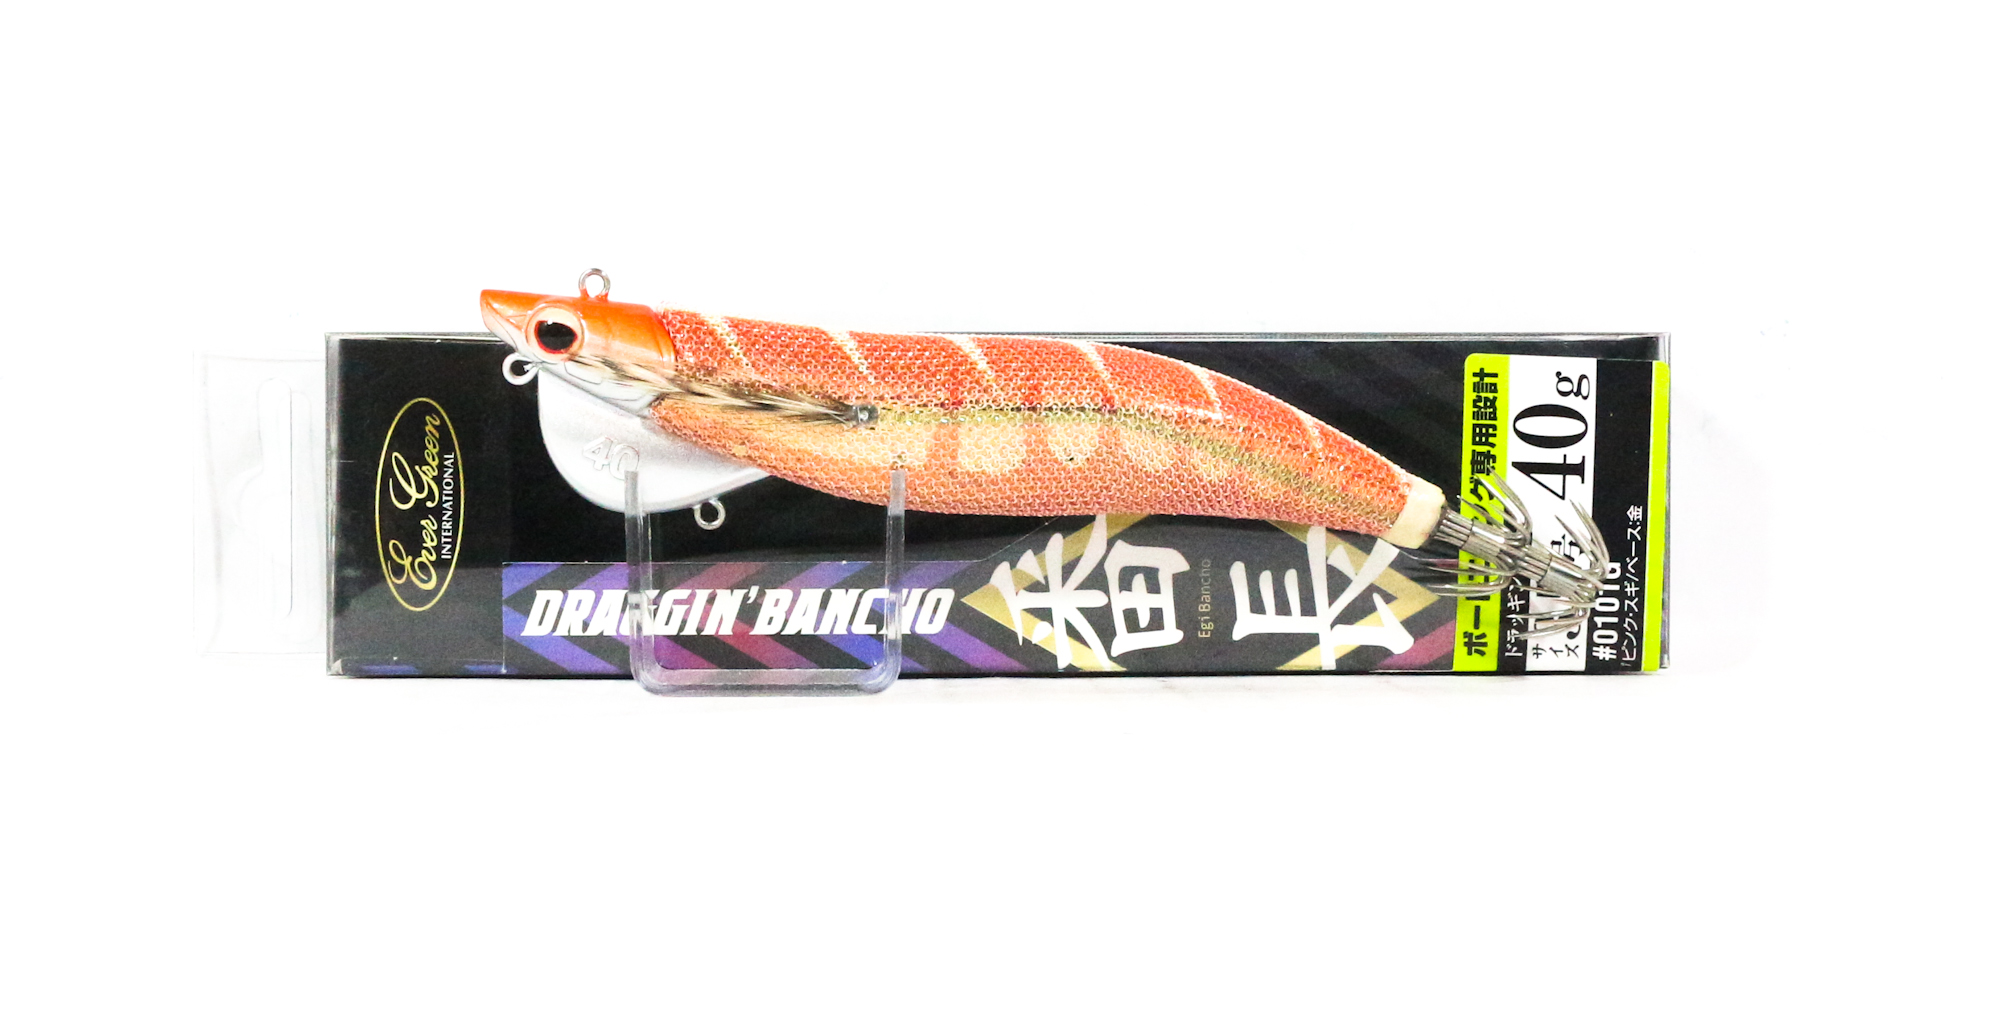 Evergreen Draggin Bancho Squid Jig Lure 3.5 40 grams 0218G (0572)